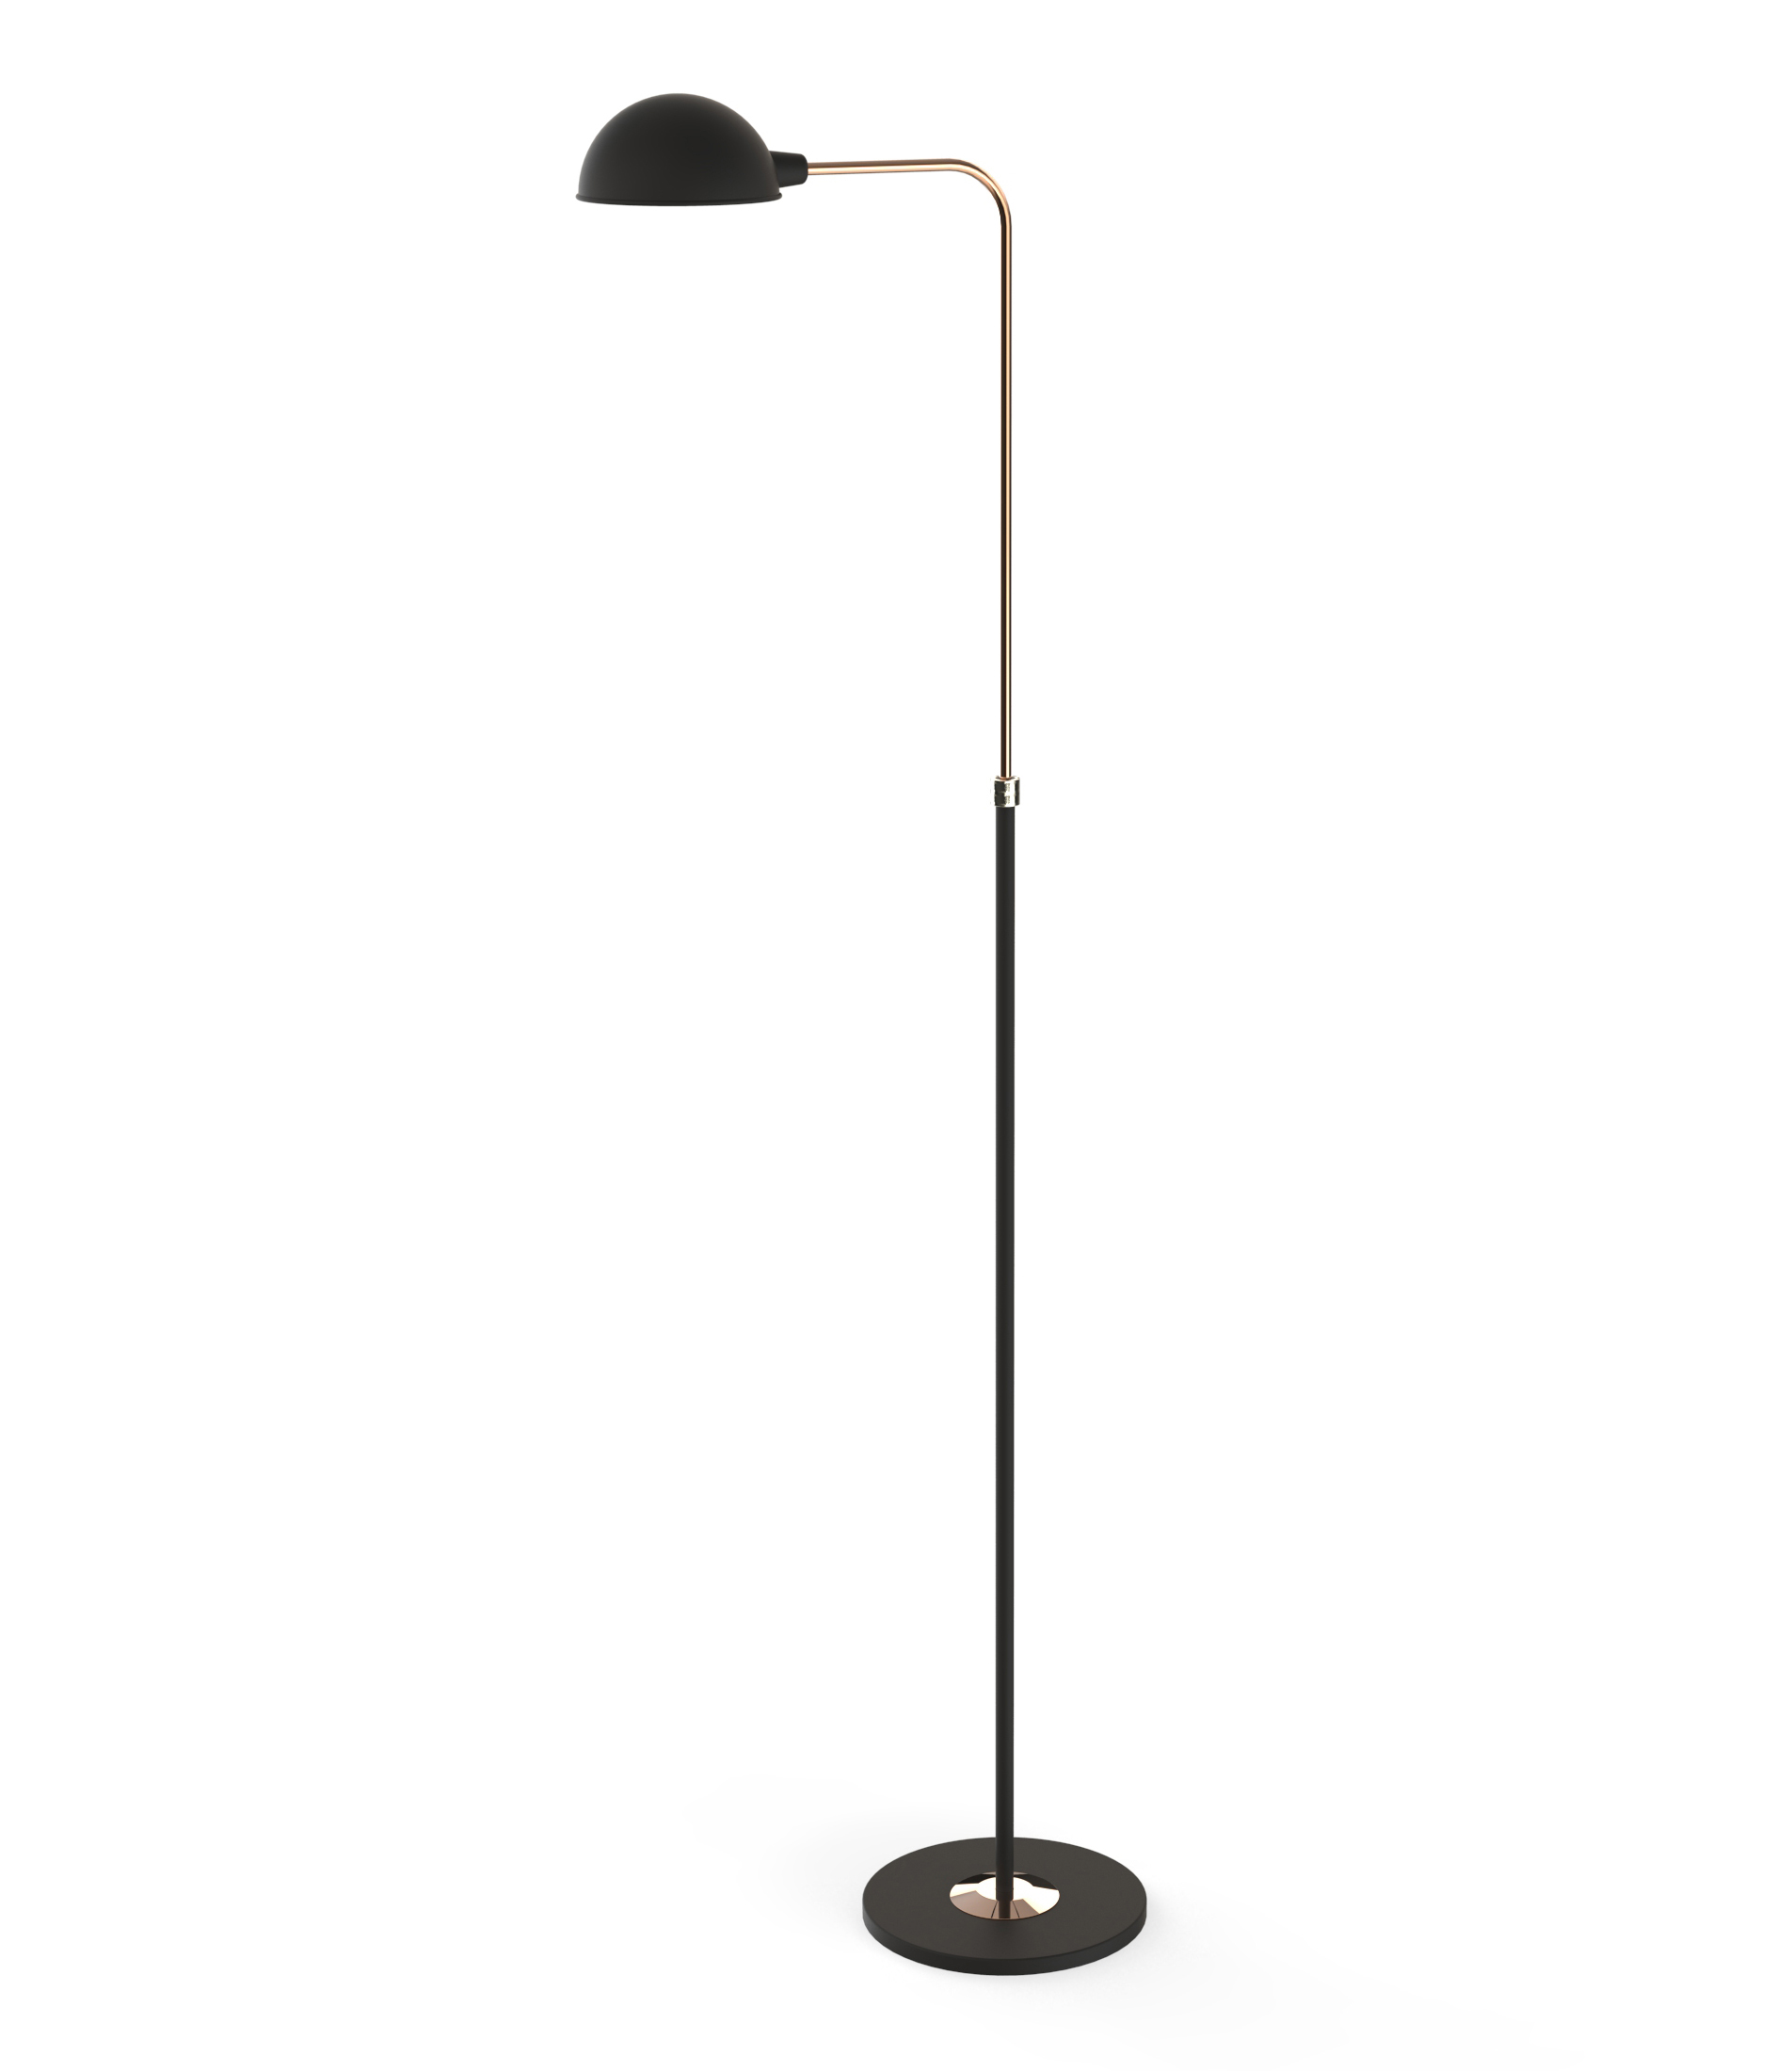 Minimalist Floor Lamp Bright Ideas A Modern Floor Lamp With A Minimalist Design